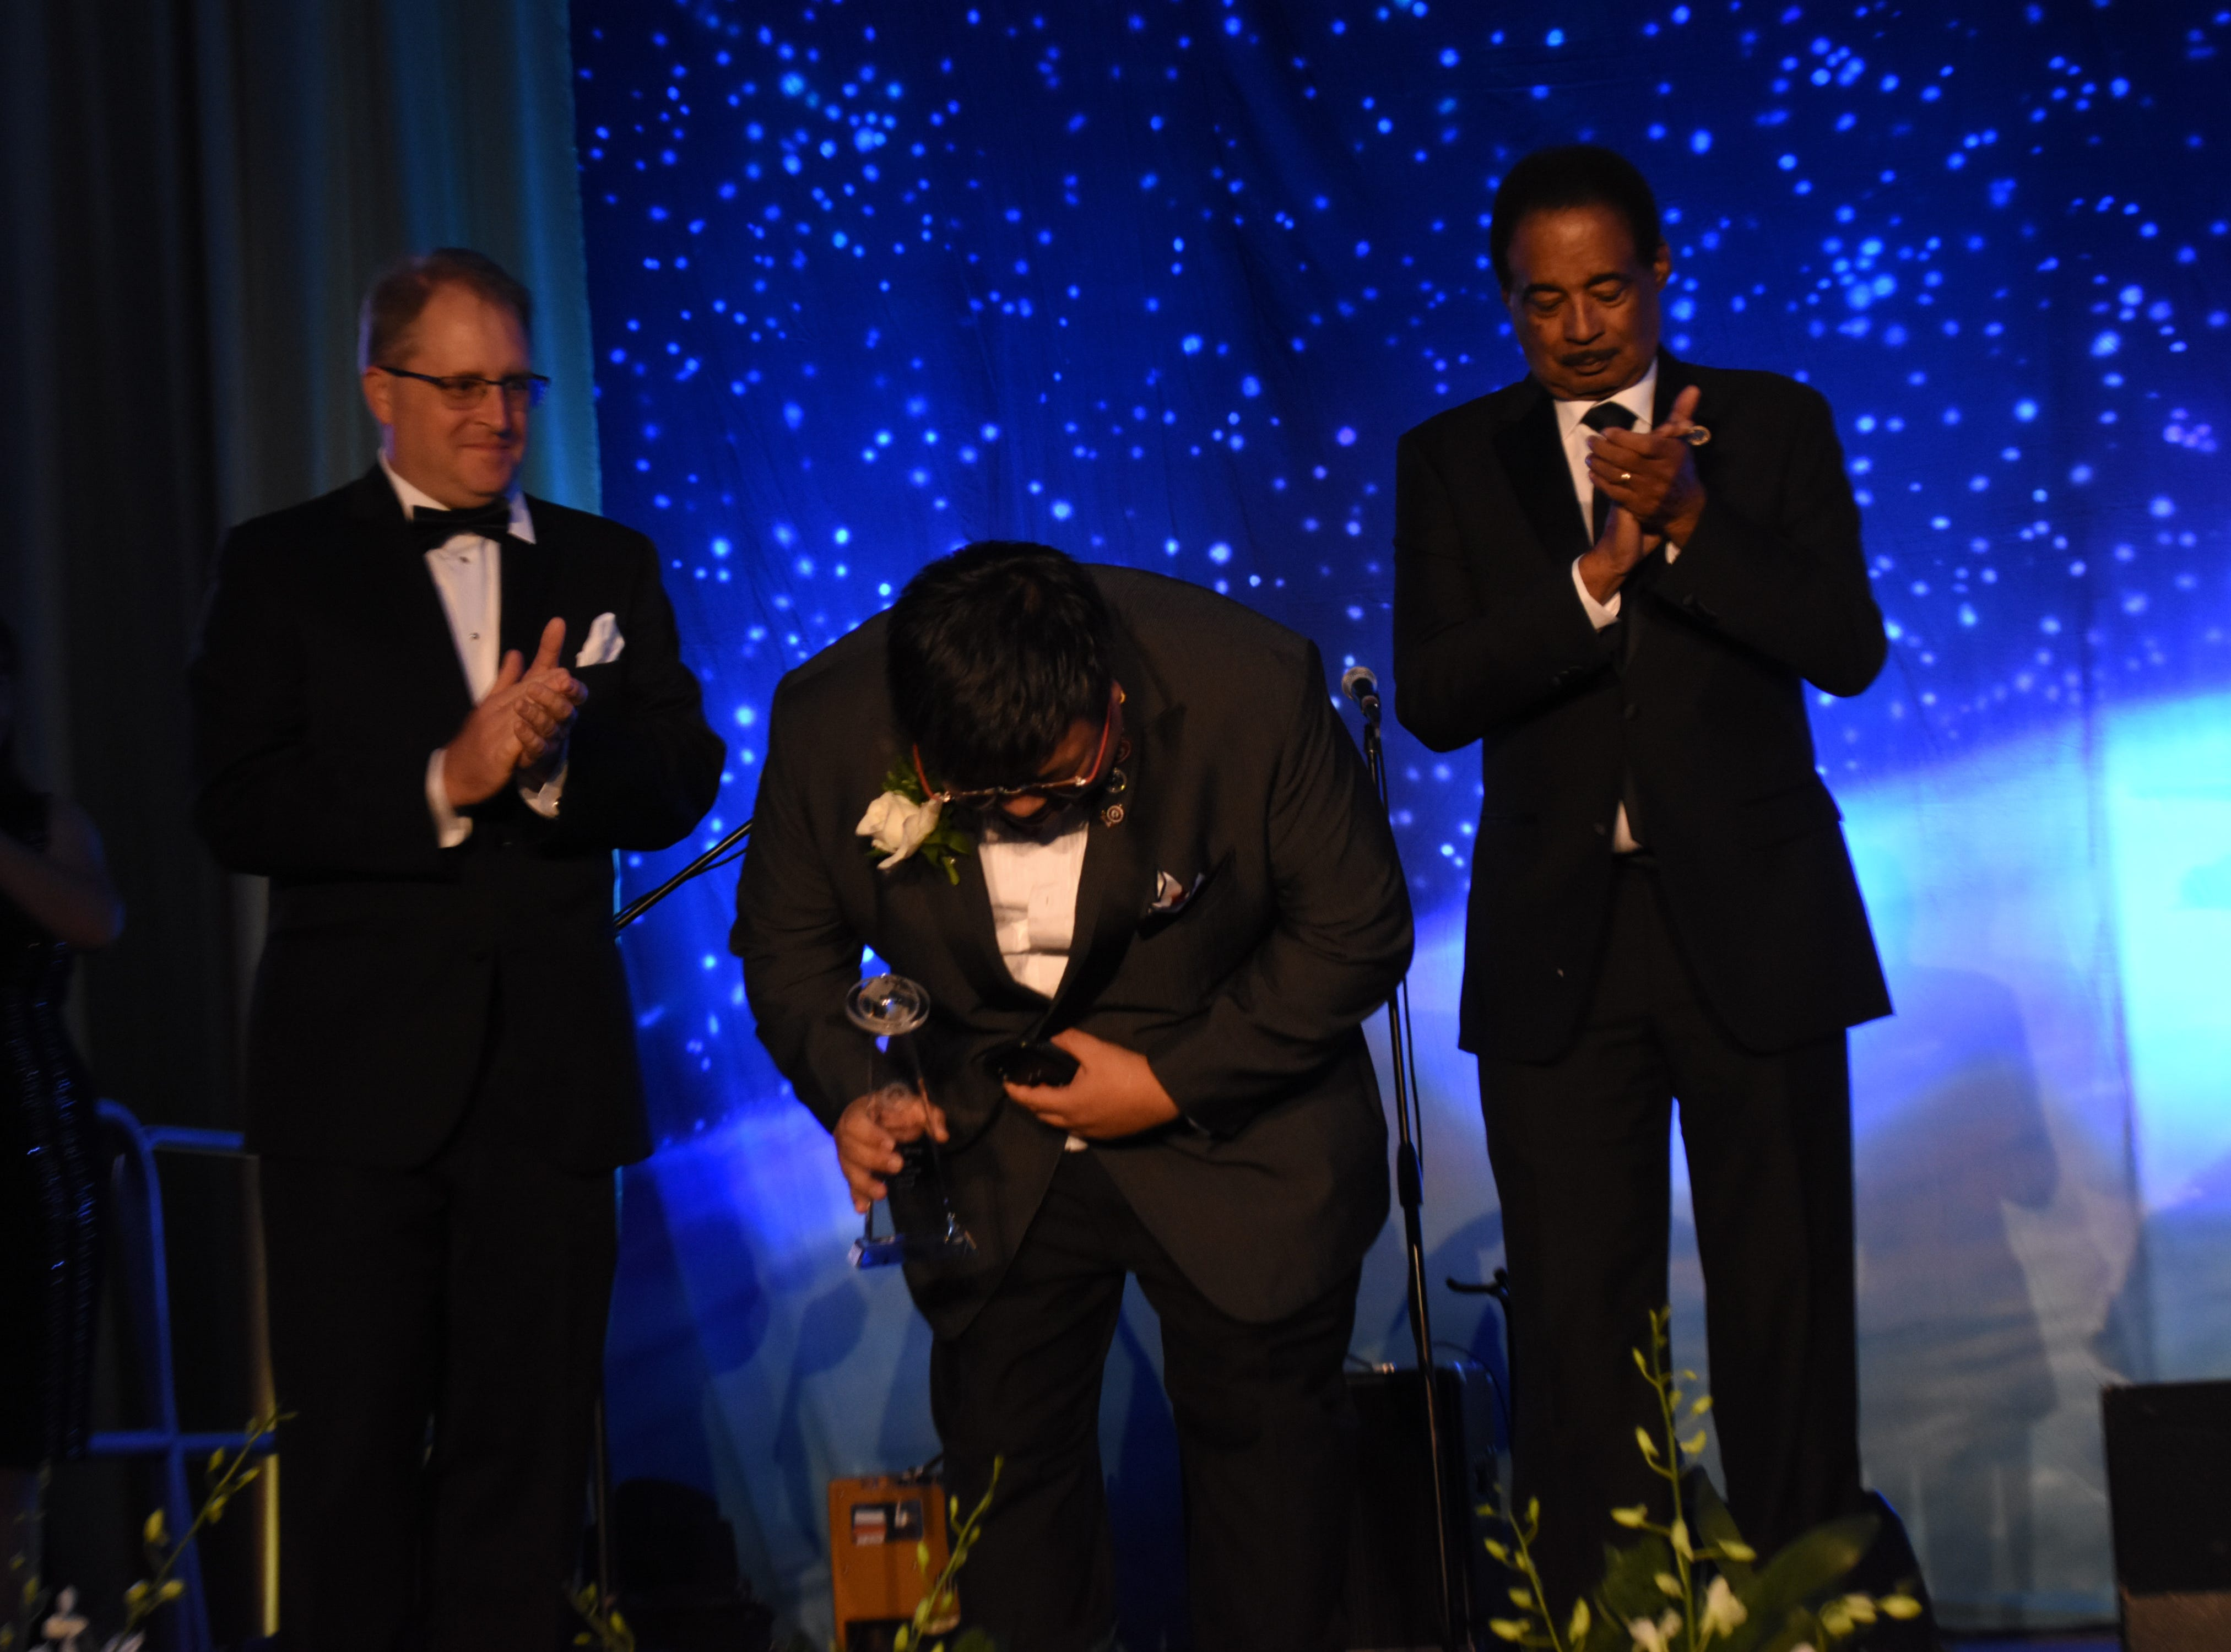 James Wong takes a bow after receiving his Outstanding Alumni from the College of Business at Florida Tech's 60th Anniversary Homecoming Gala Oct. 13, 2018, at the Clemente Center.